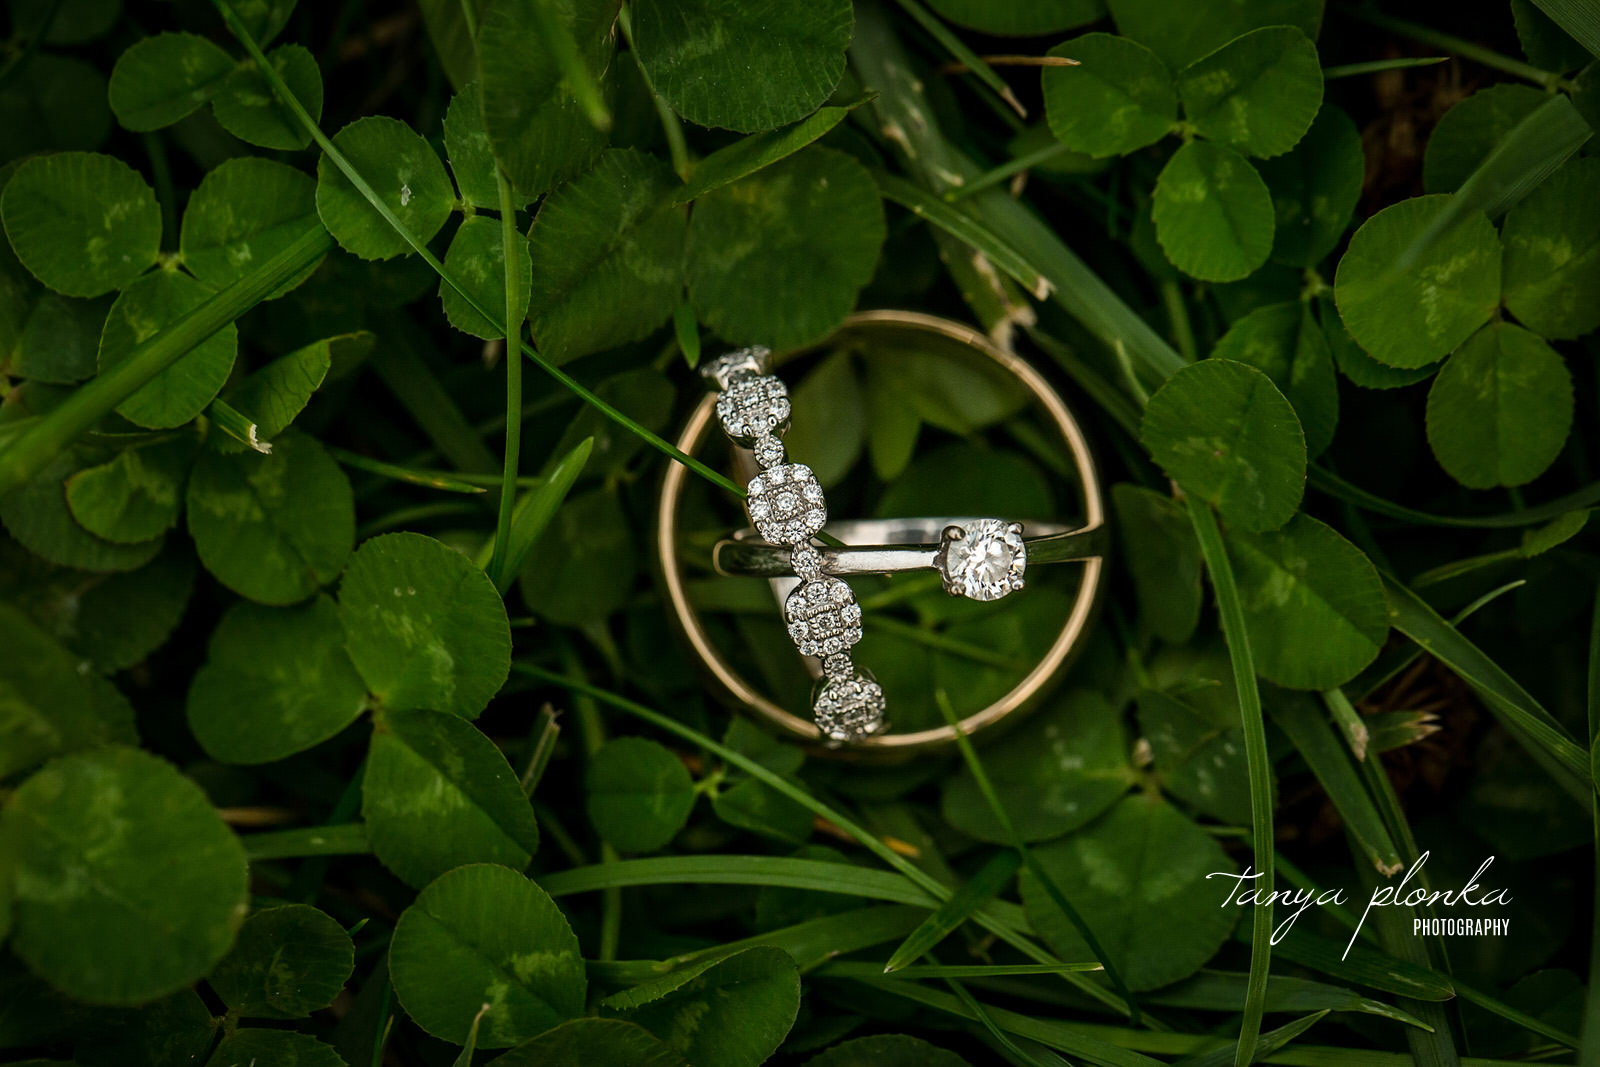 Bride's wedding rings are placed inside groom's wedding band and sit on green clover